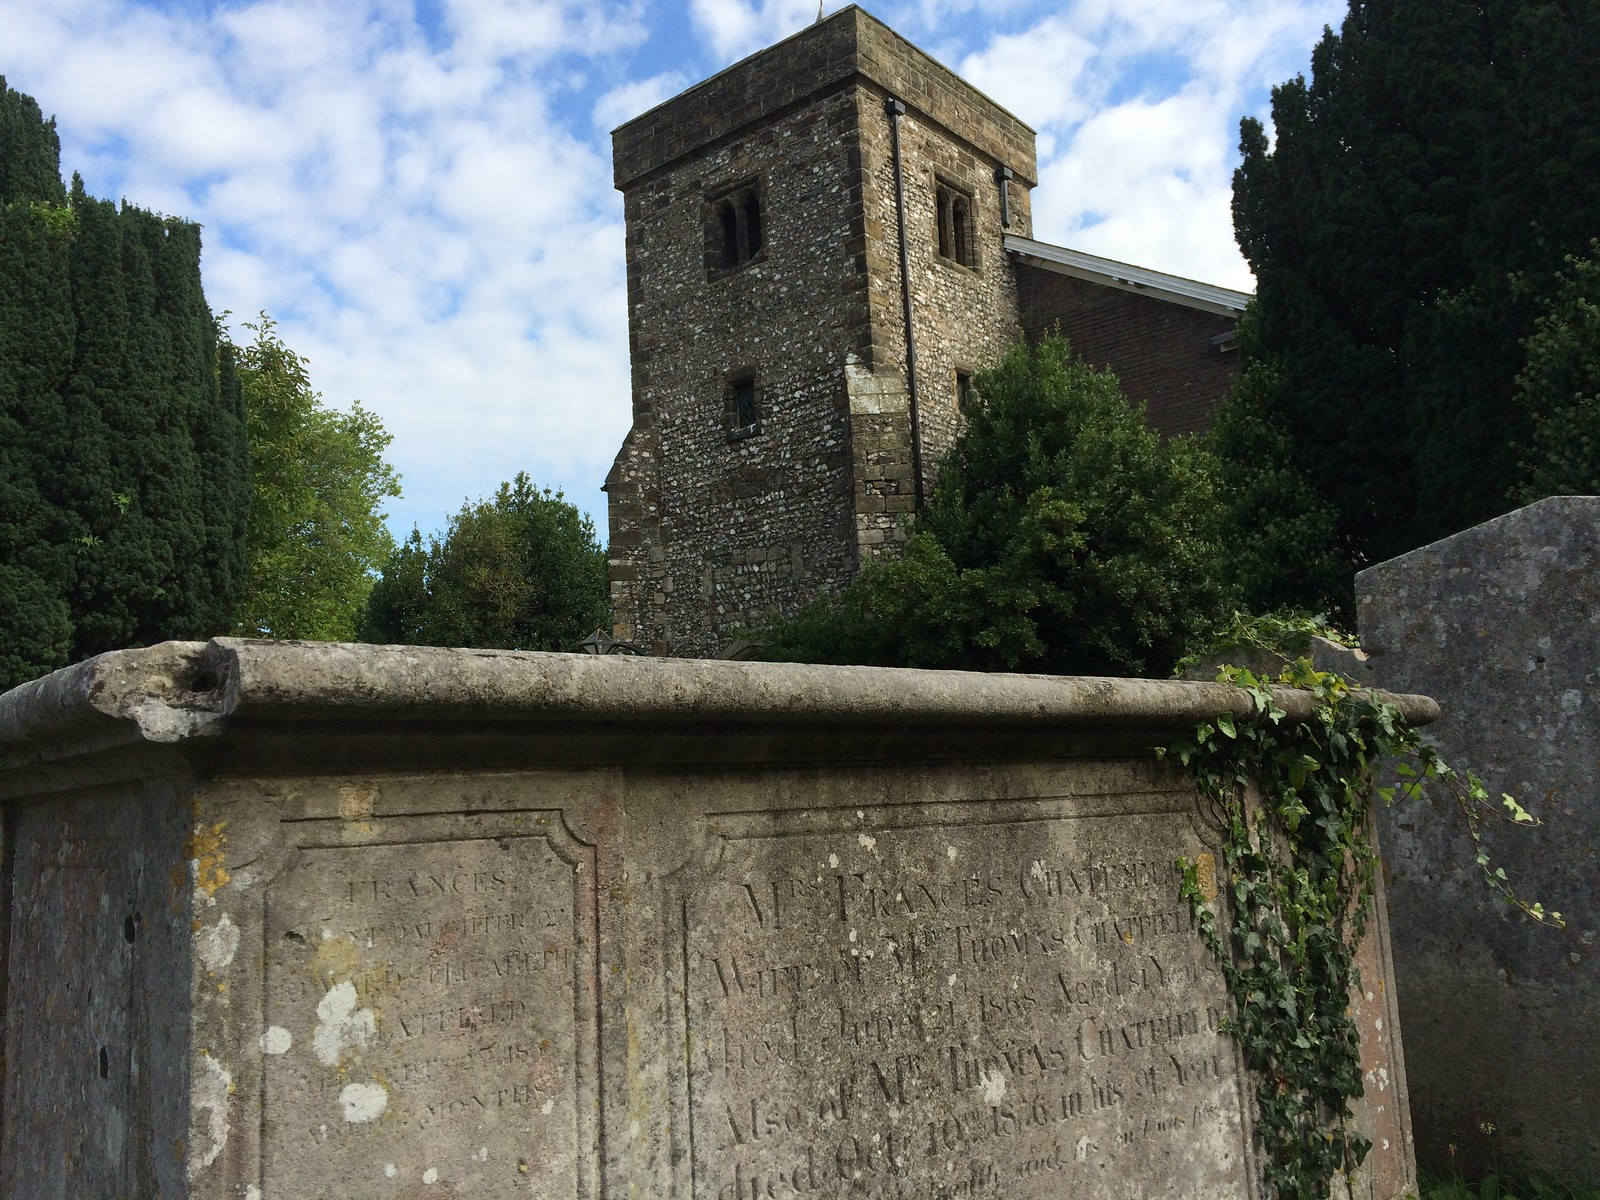 August 29, 2015: Lewes to Seaford Lewes All Saints Centre